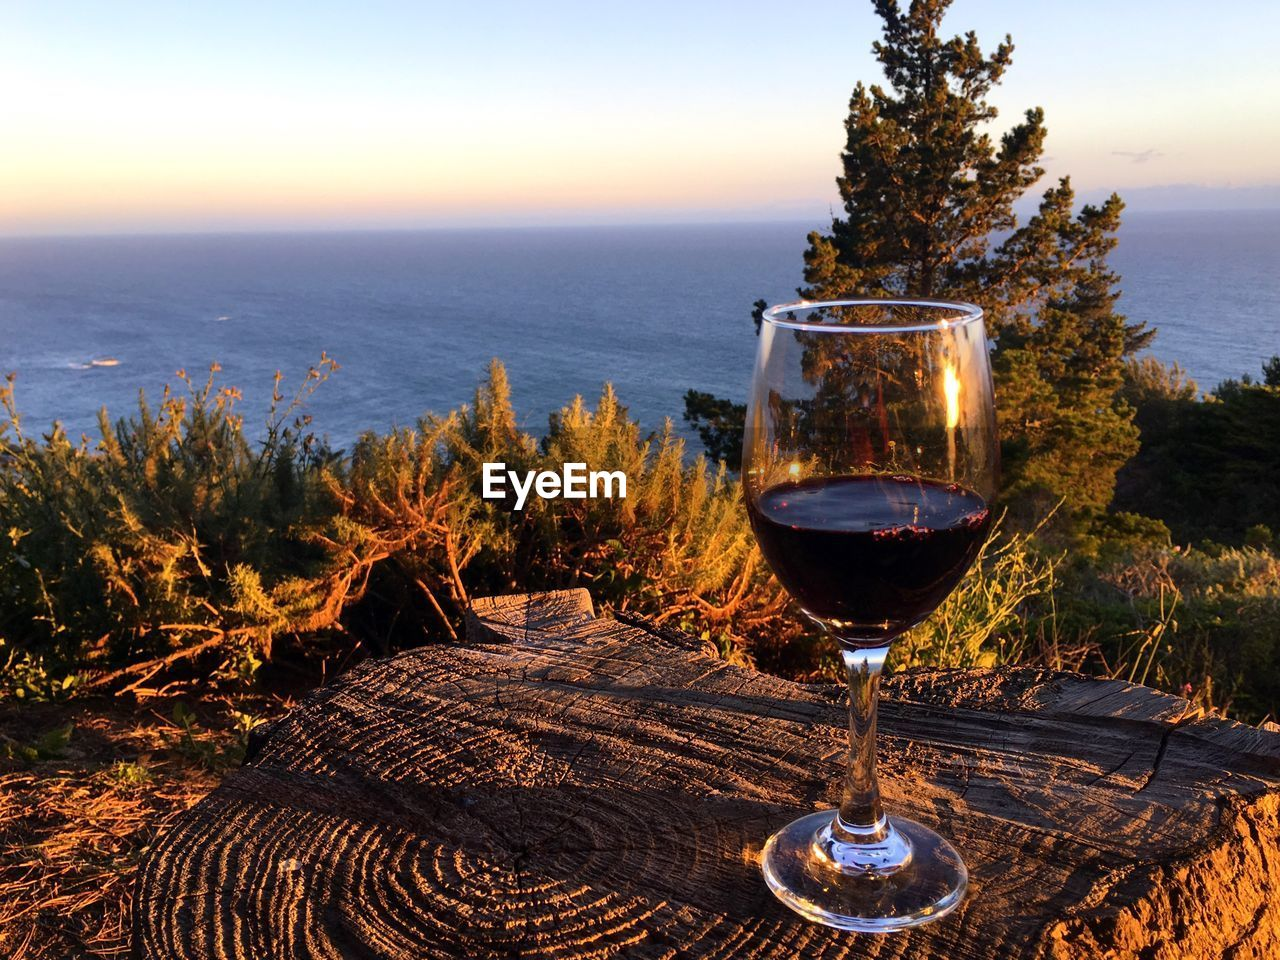 wineglass, wine, alcohol, sunset, nature, food and drink, no people, scenics, drink, outdoors, beauty in nature, tree, drinking glass, sea, sky, water, day, horizon over water, freshness, close-up